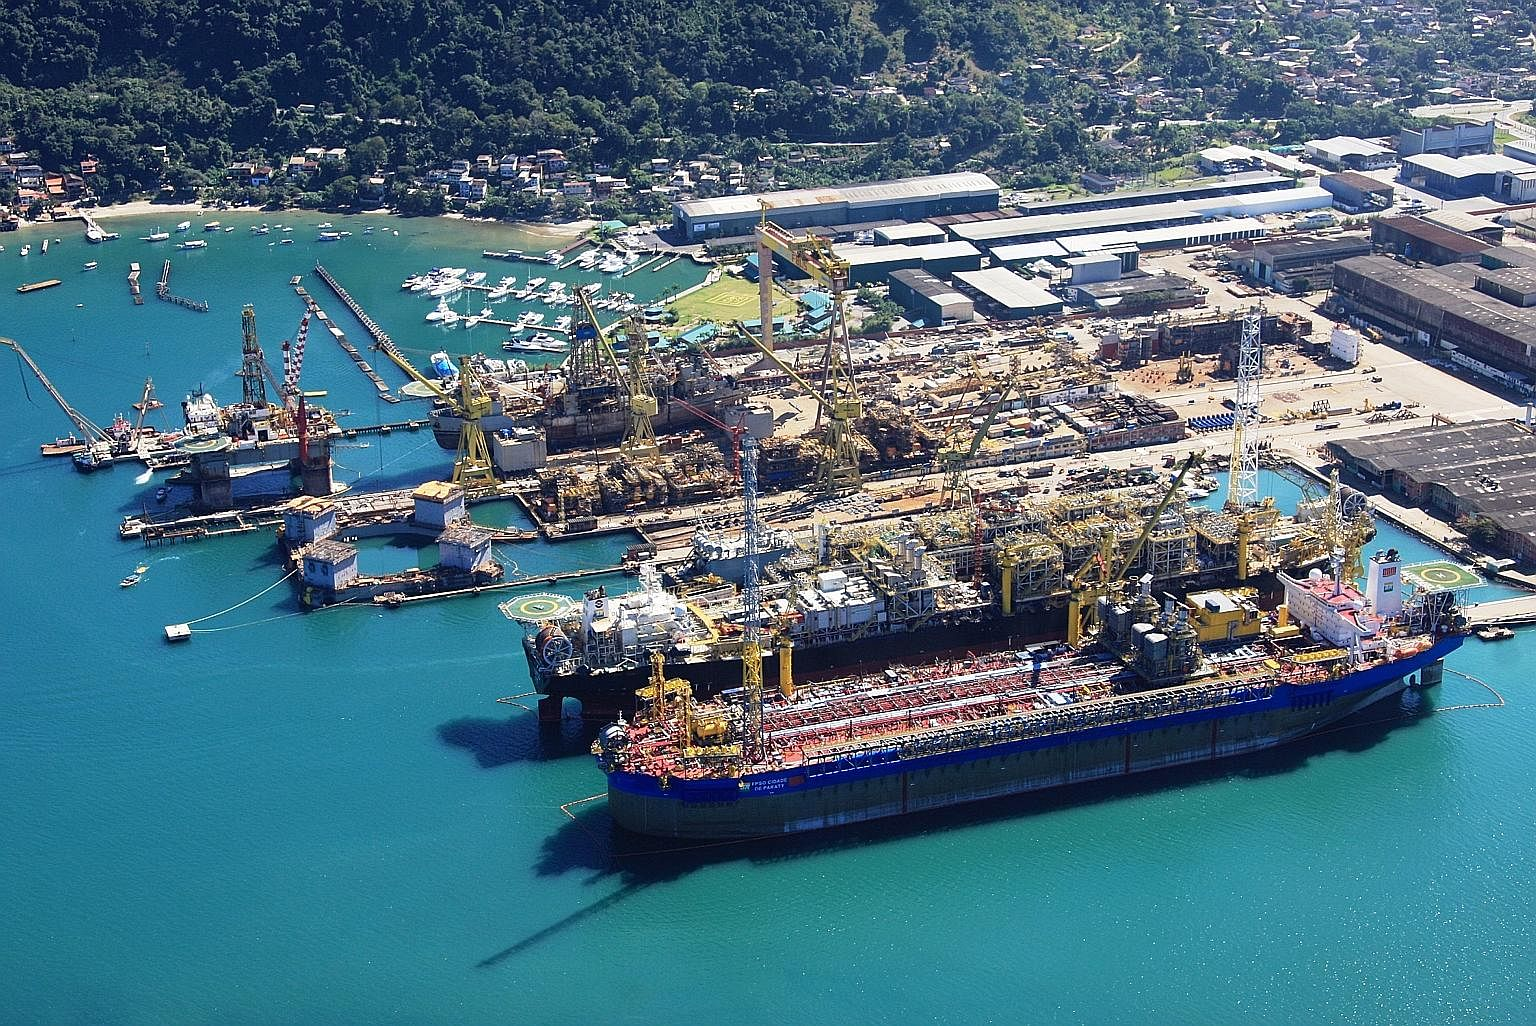 Keppel's shipyard in Brazil. Keppel O&M has said it will continue its operations in Brazil, despite having to pay US$422 million (S$567million) in fines as part of a global resolution for a corruption probe across three jurisdictions in Singapore, Br